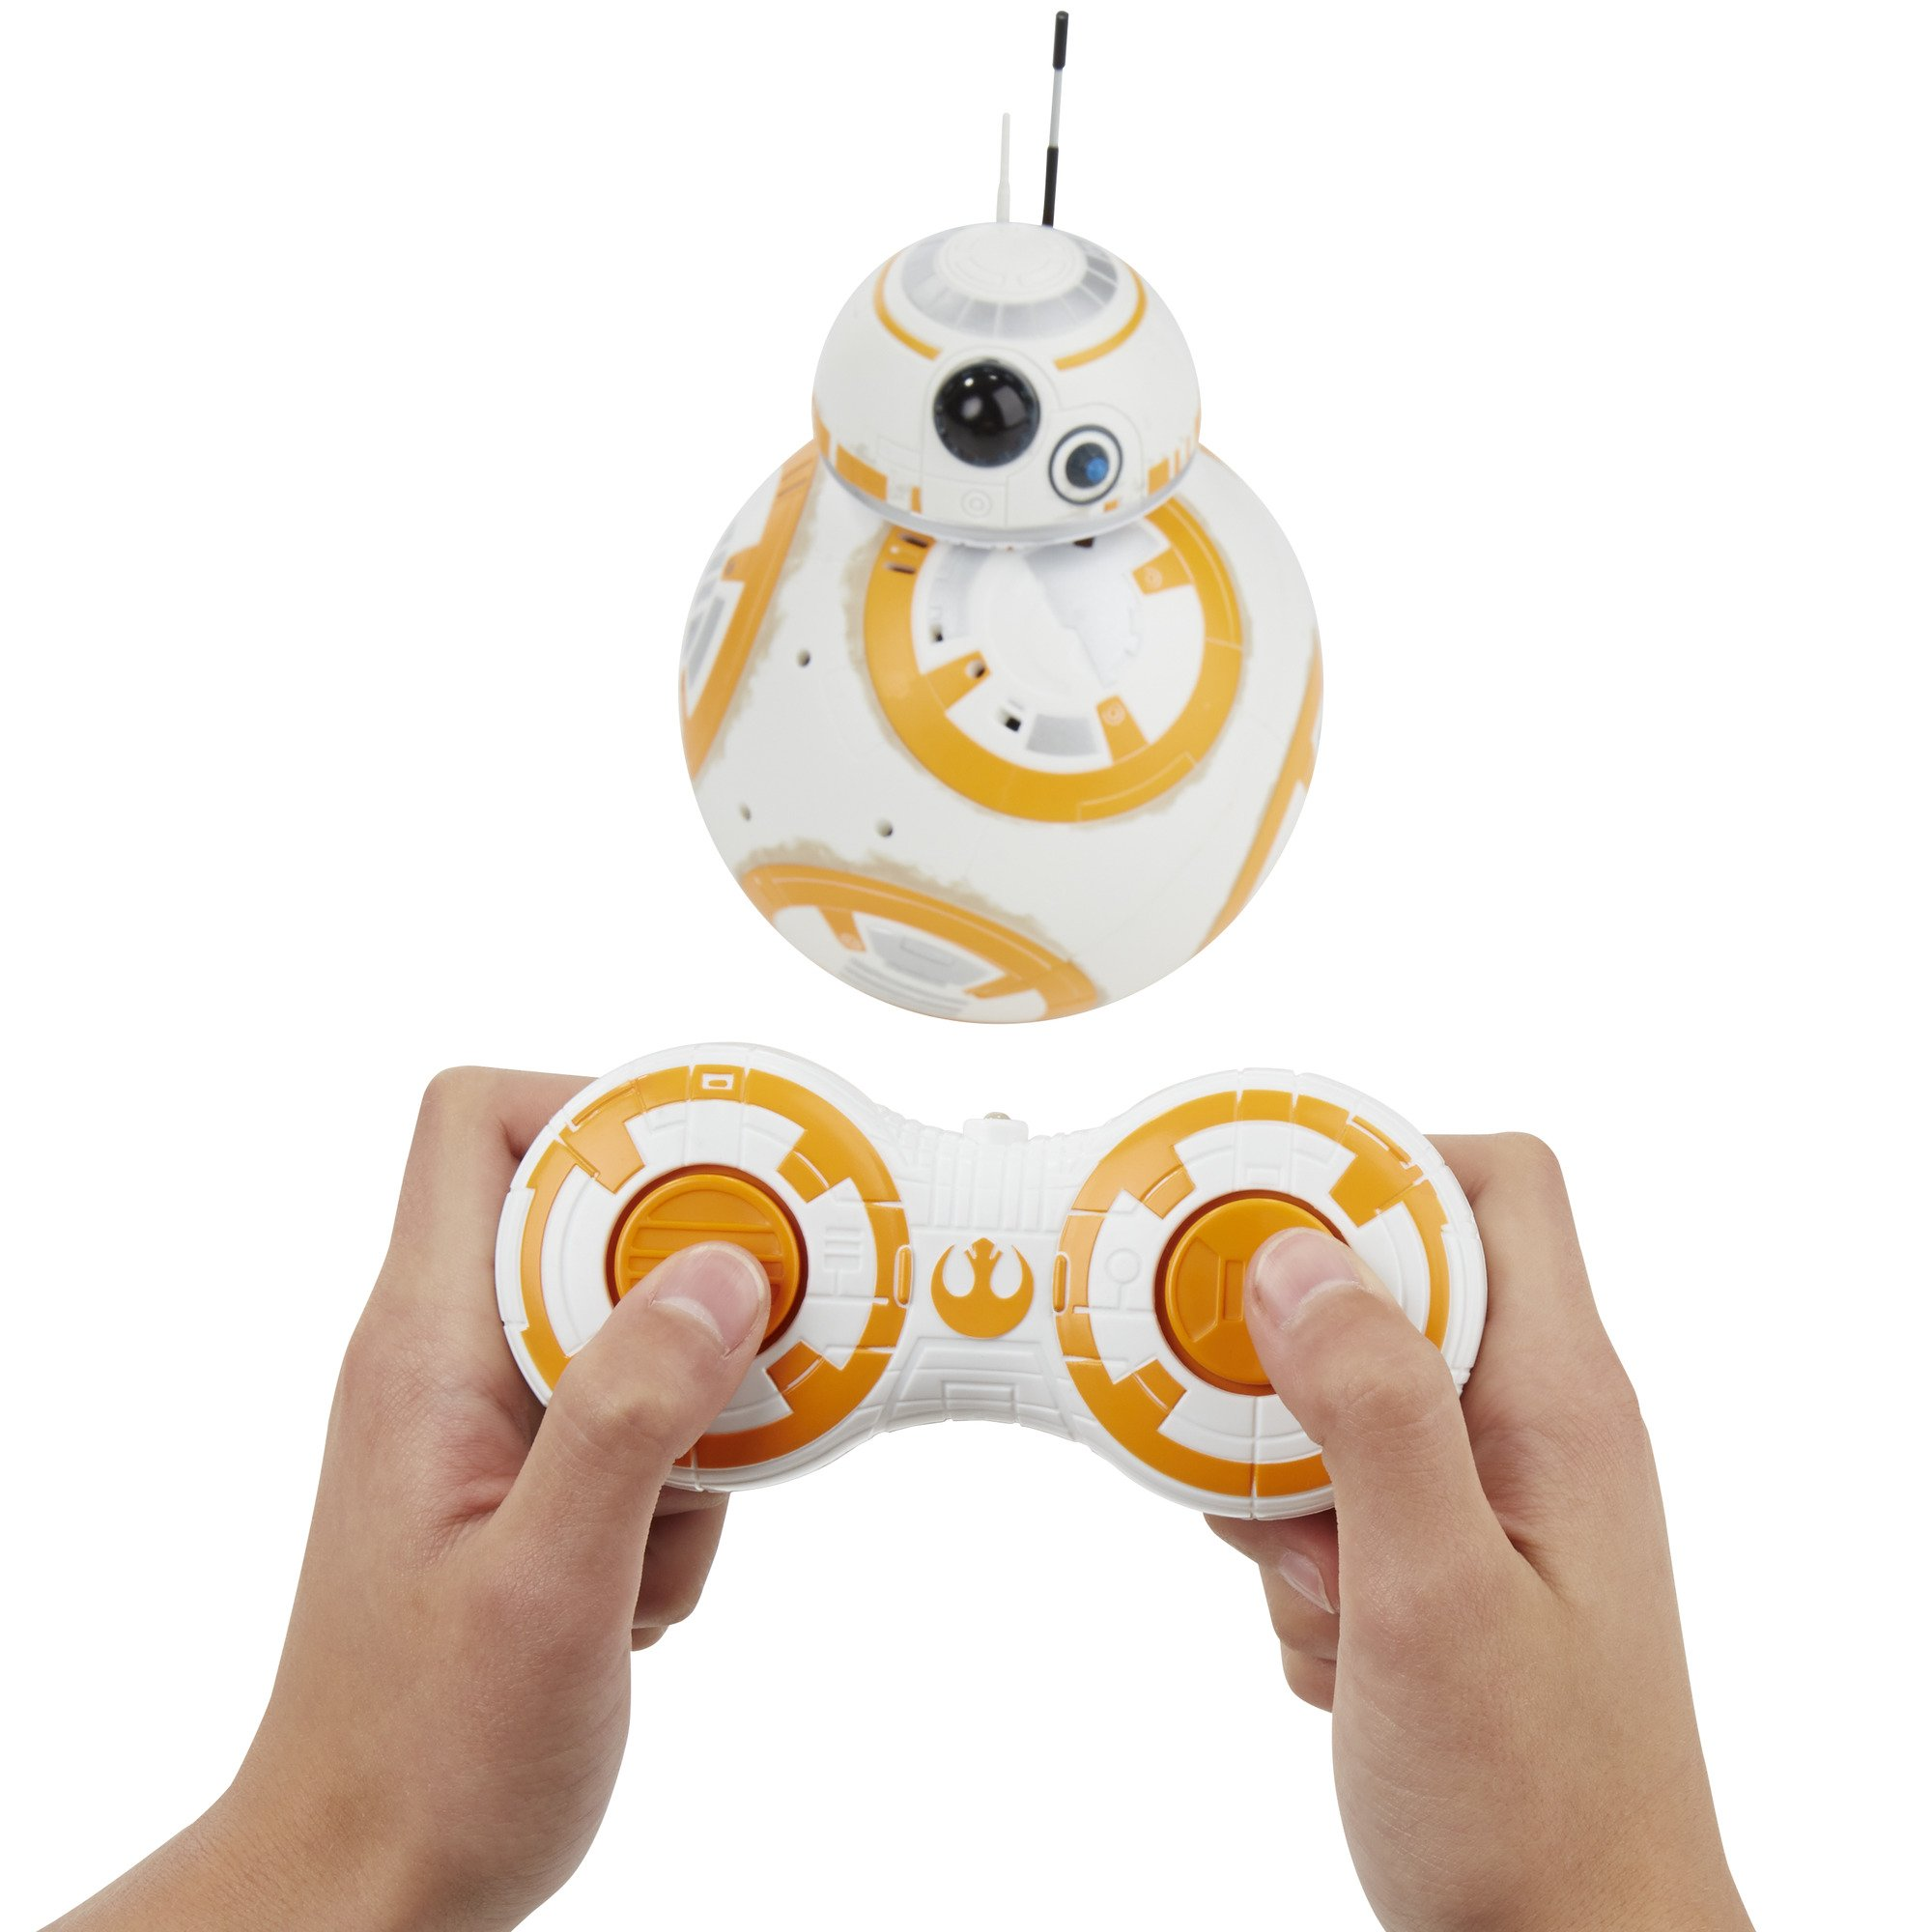 Star Wars The Force Awakens RC BB-8 by Star Wars (Image #10)